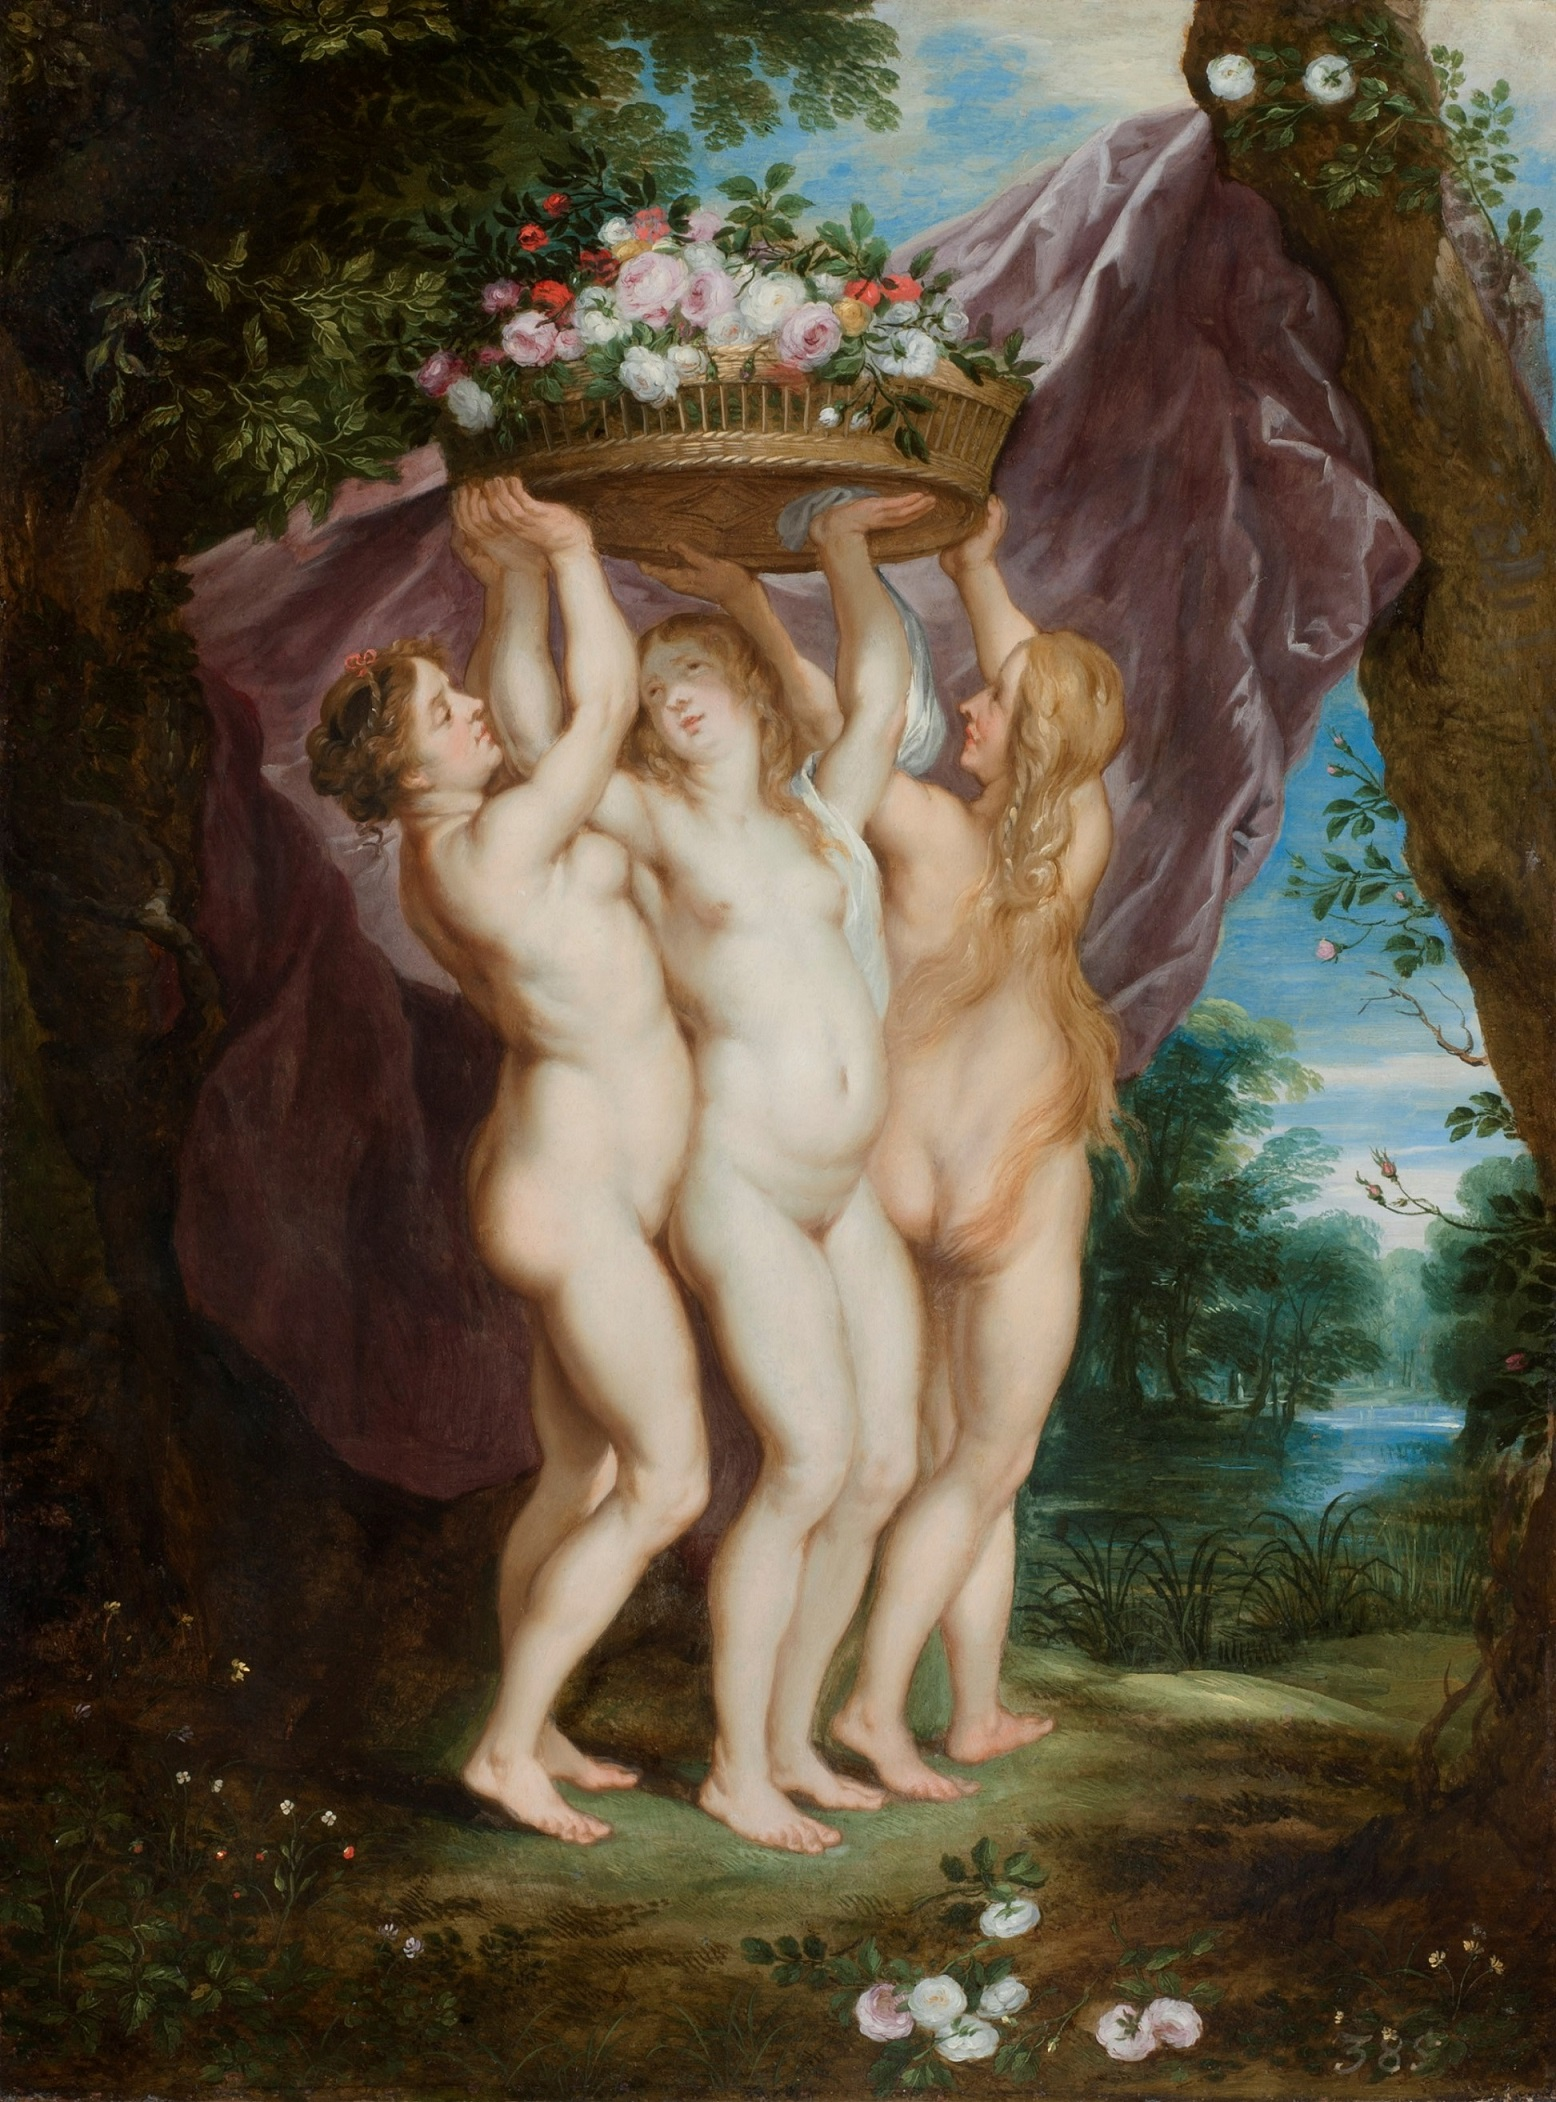 Jan Brueghel and Frans Wouters - The Three Graces with a Basket of Flowers